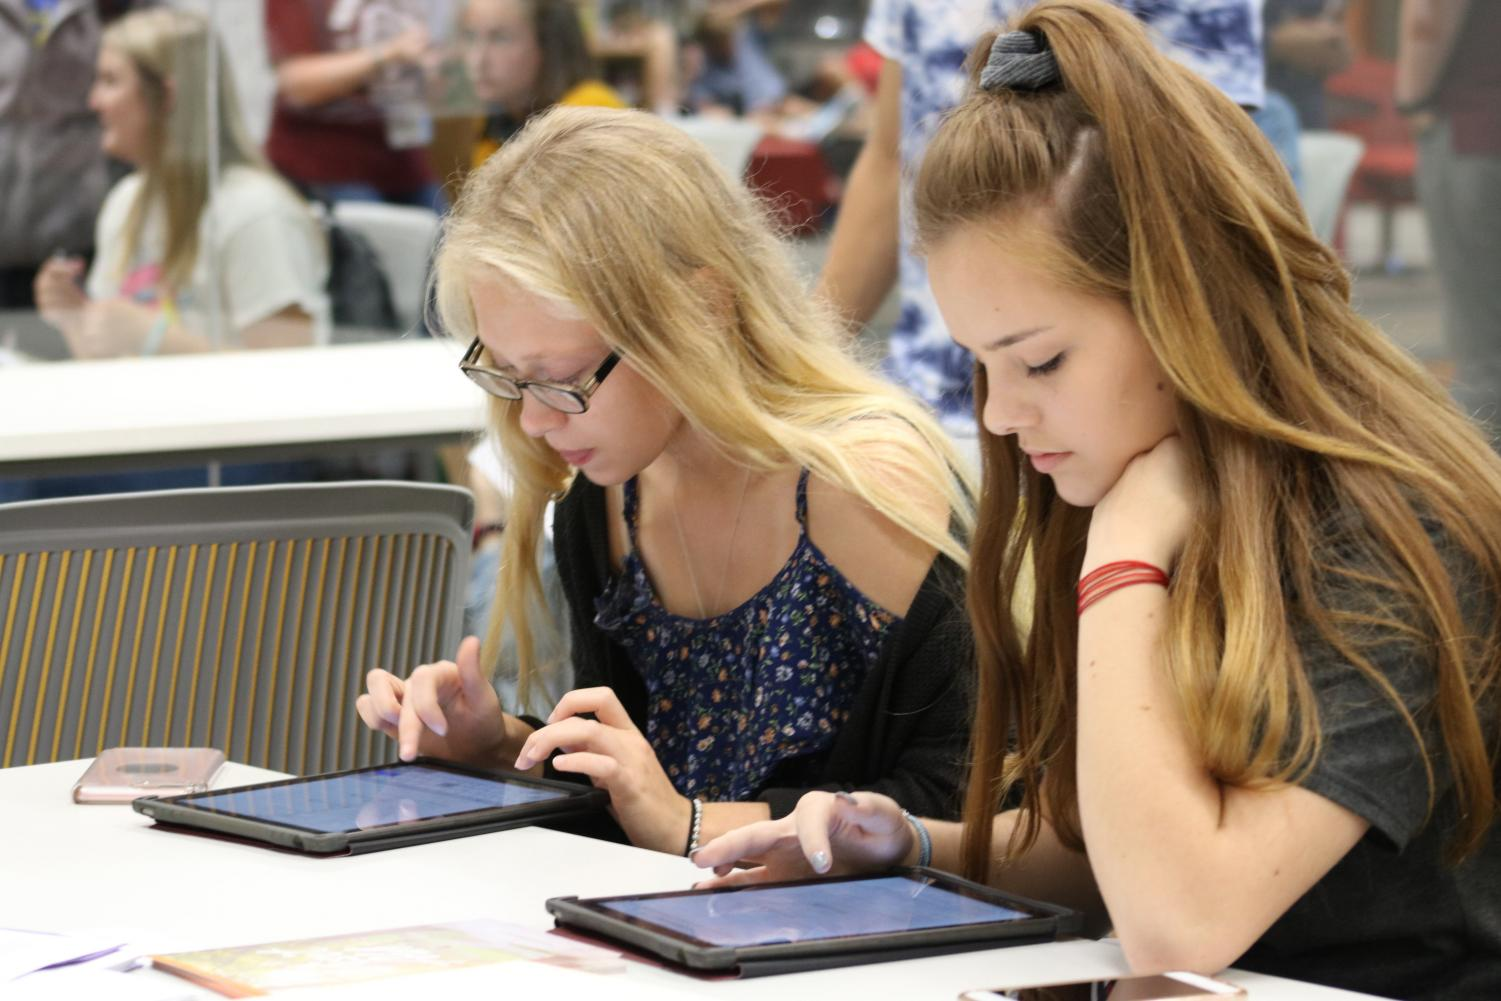 MaKenzie Carson and Angela Negri complete applications on College App Day 2018.